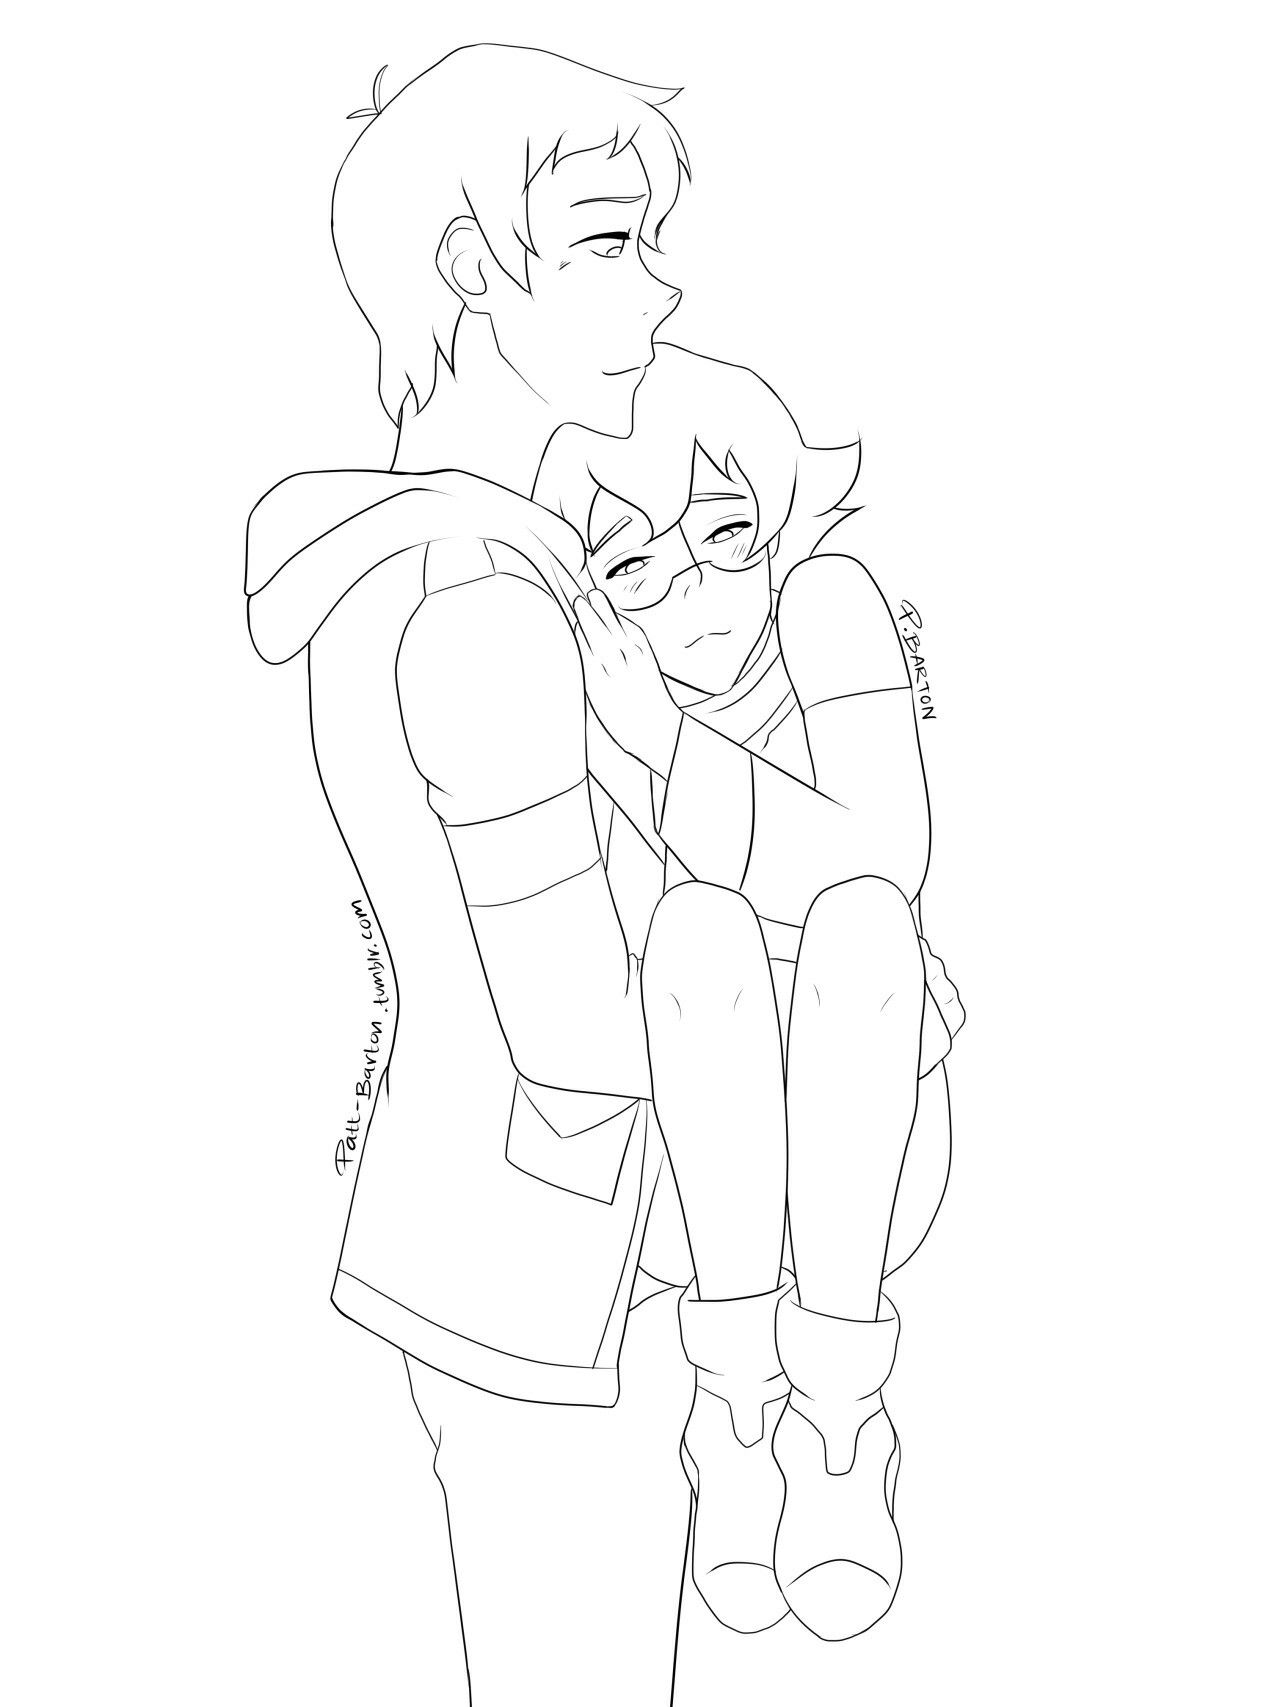 Lance Carrying Sleepy Pidge In His Arms From Voltron